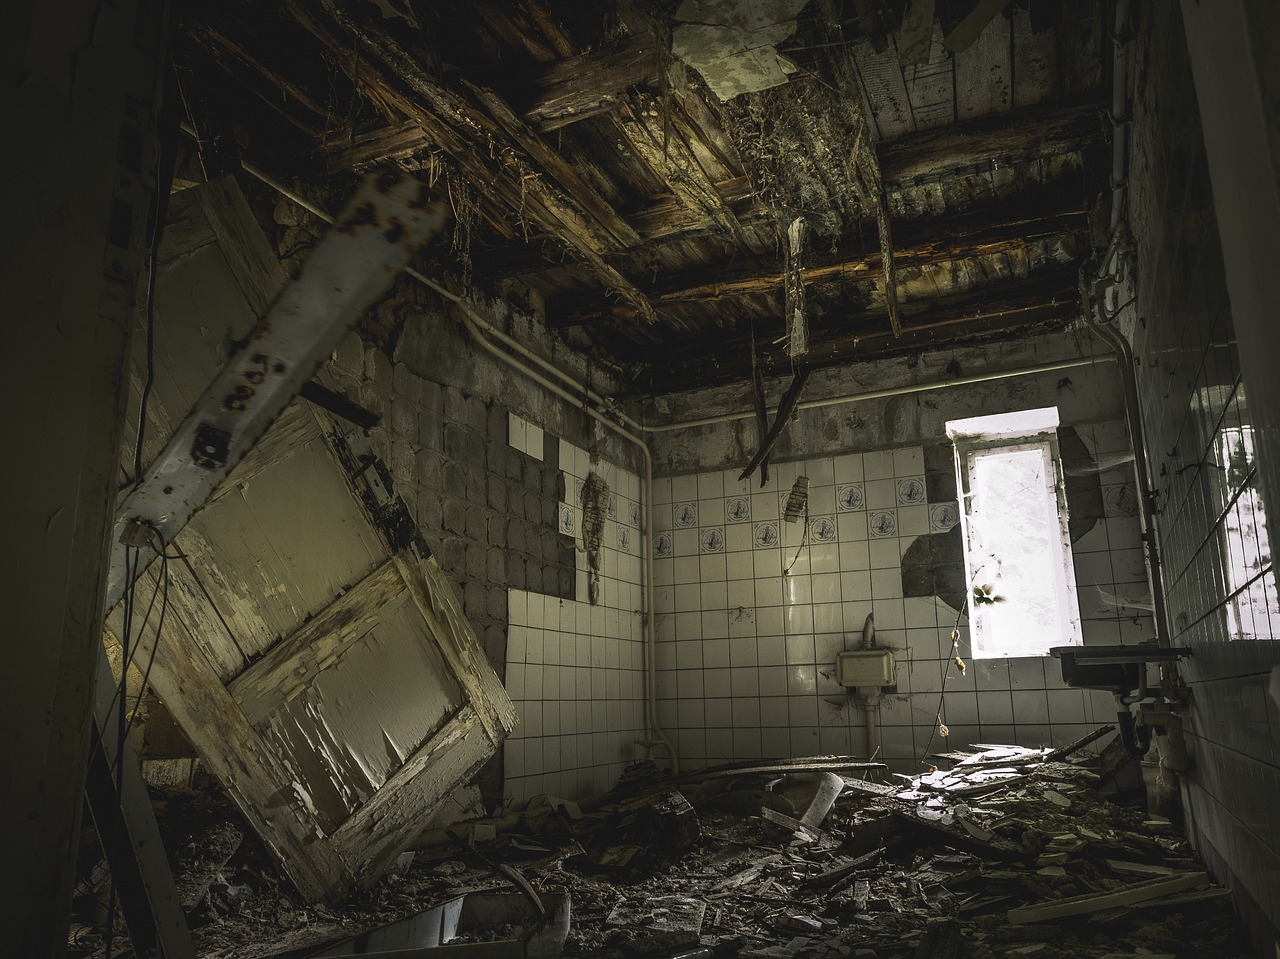 lost place horror abandoned building free photo